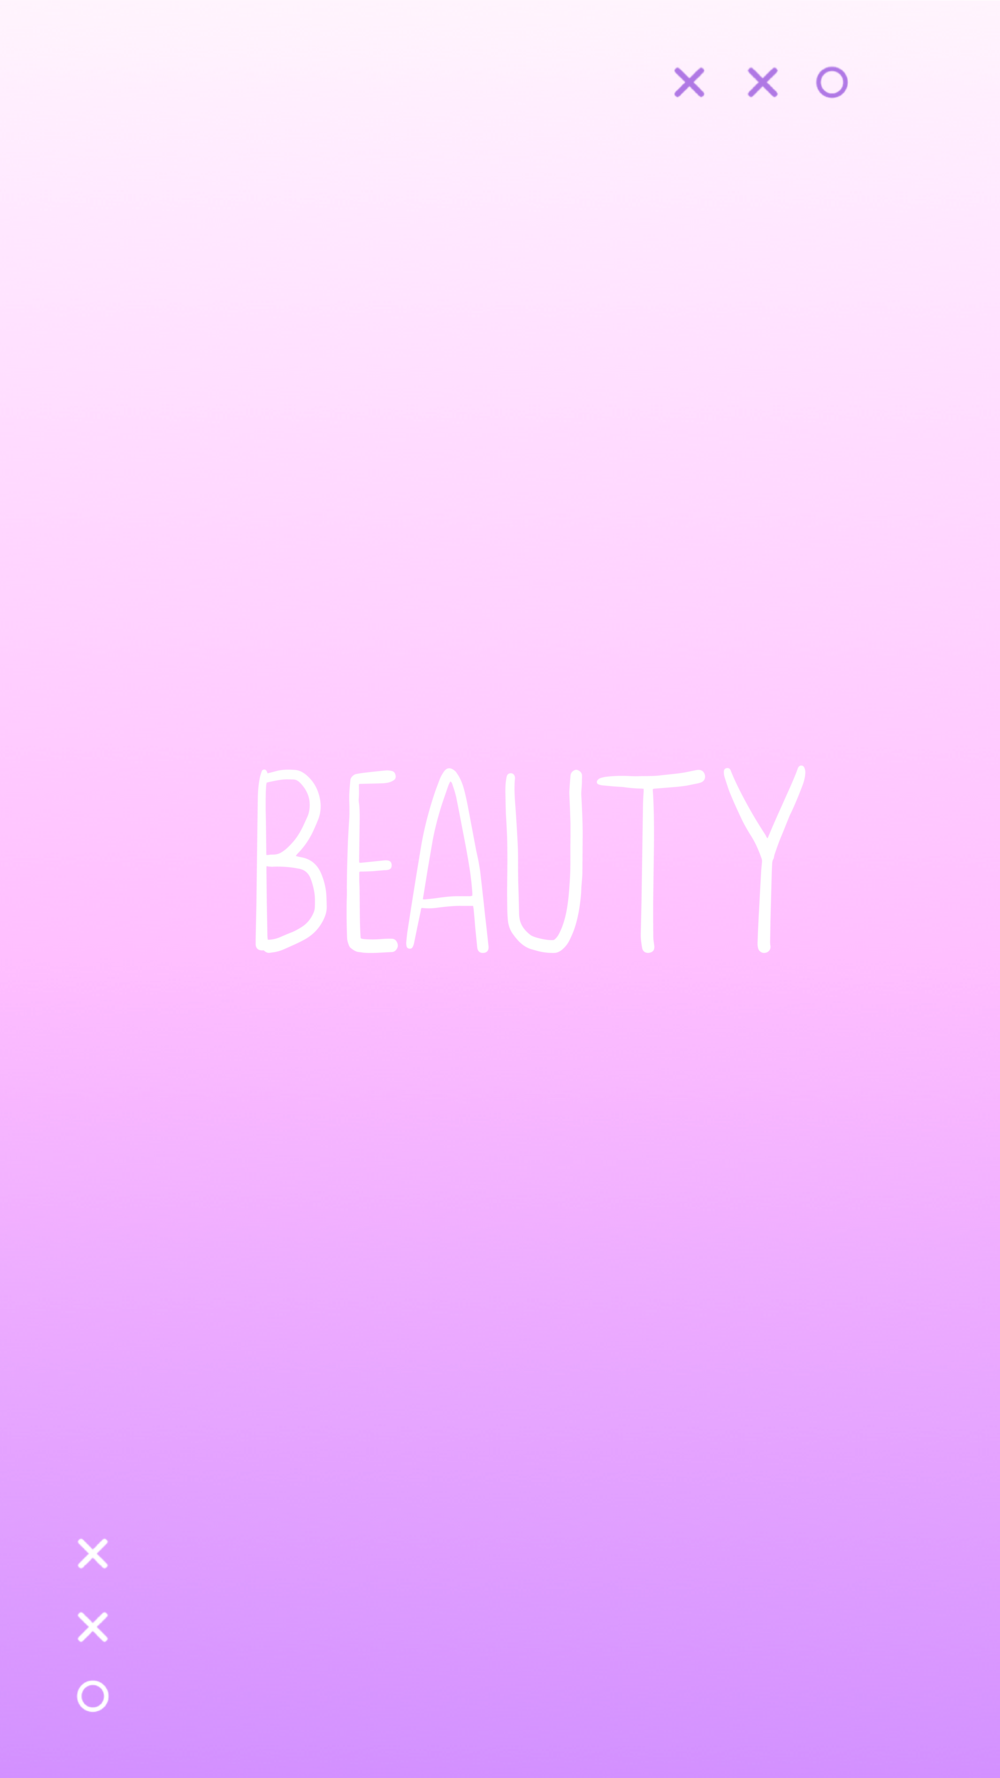 beauty.png